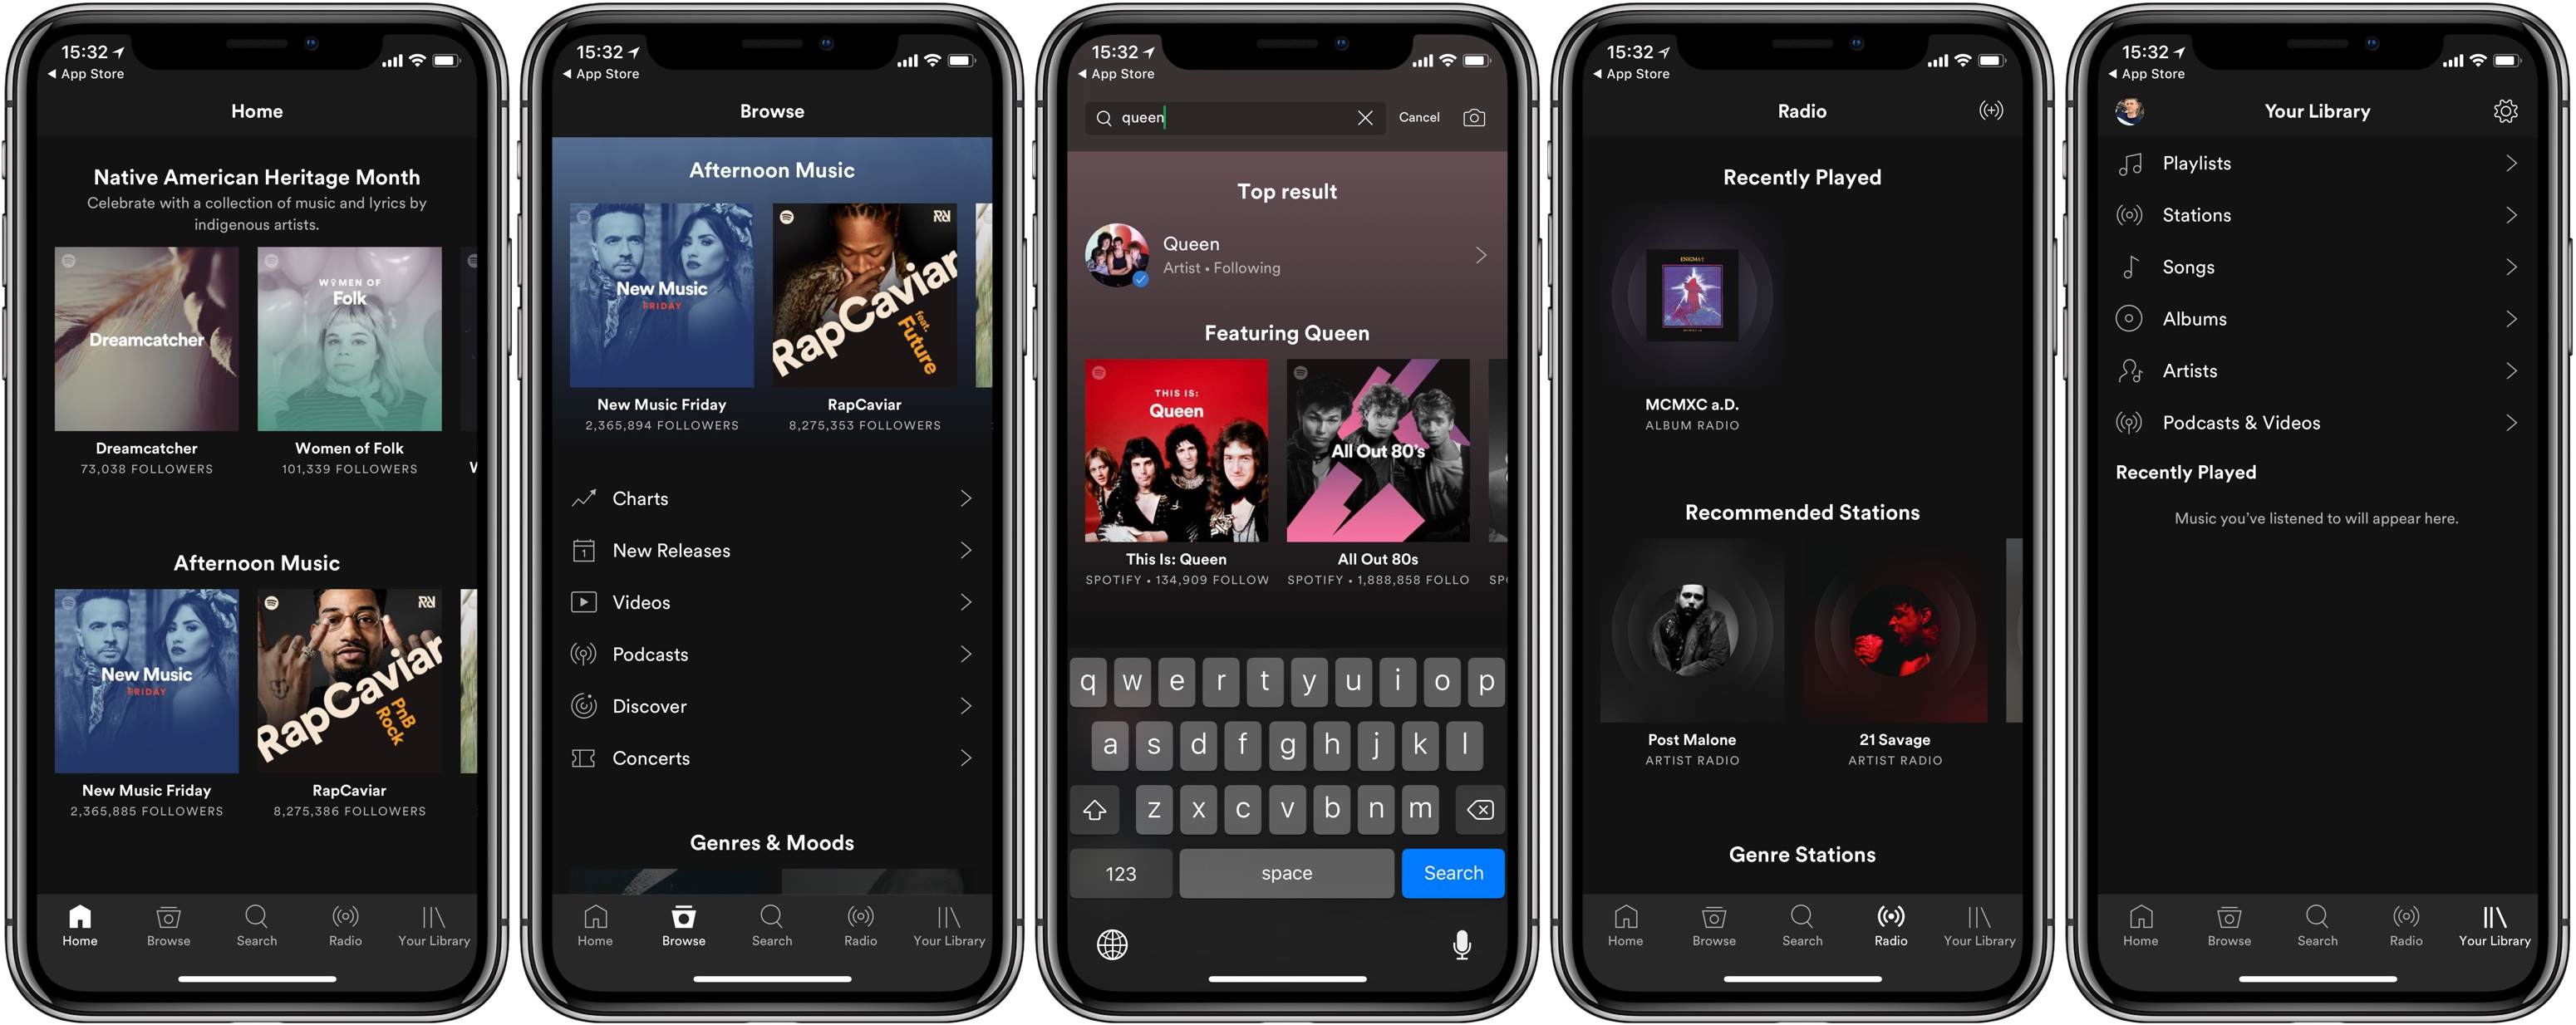 Iphone spotify  How to play Spotify music on Apple Watch without